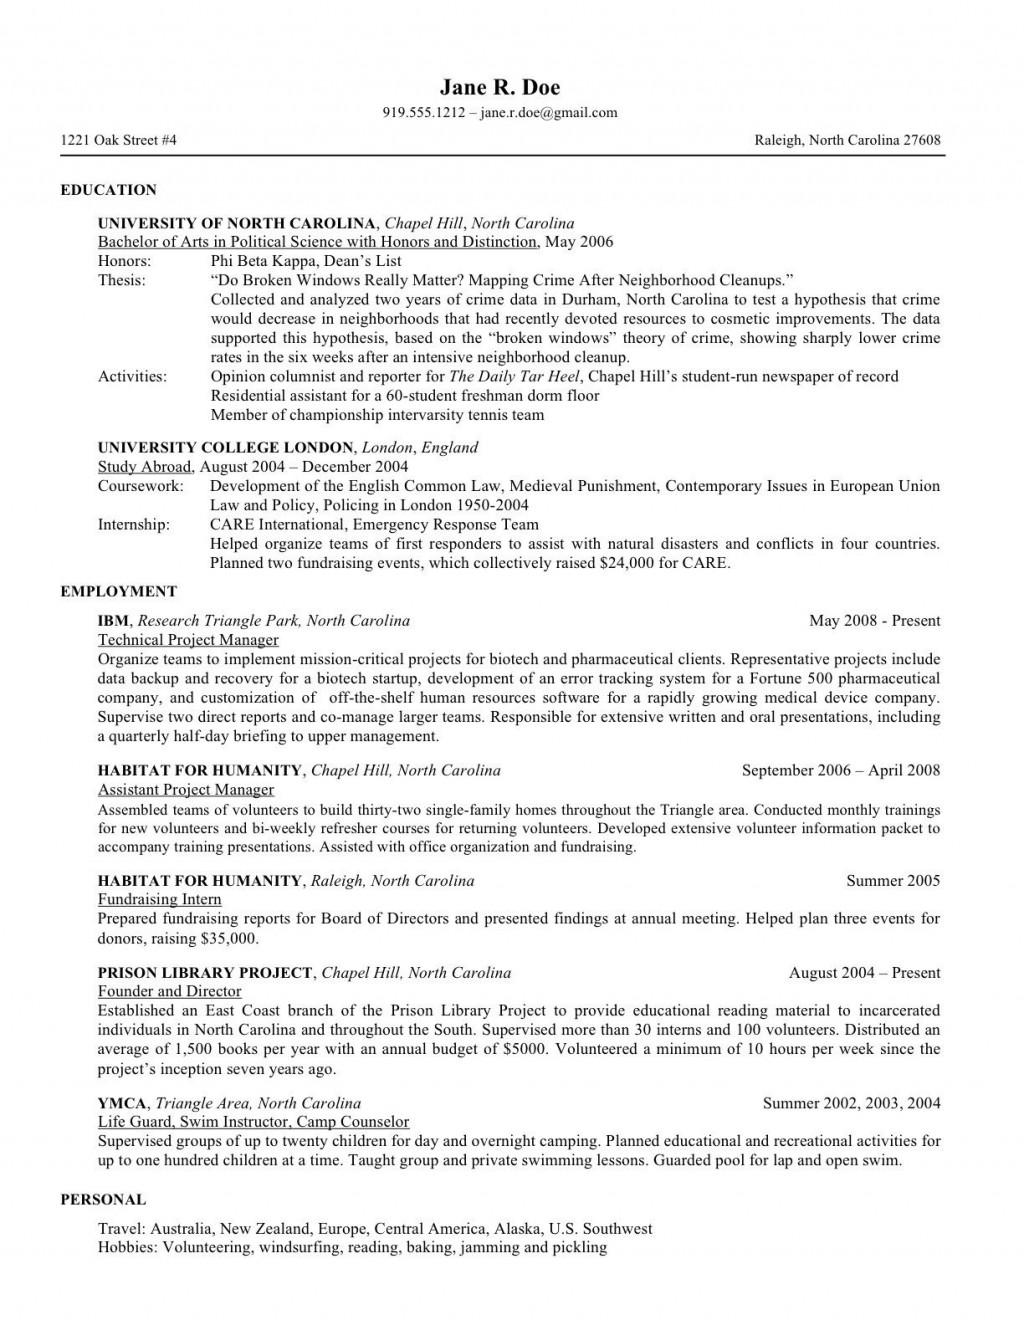 002 Rare Grad School Application Cv Template High Resolution  Graduate Microsoft WordLarge